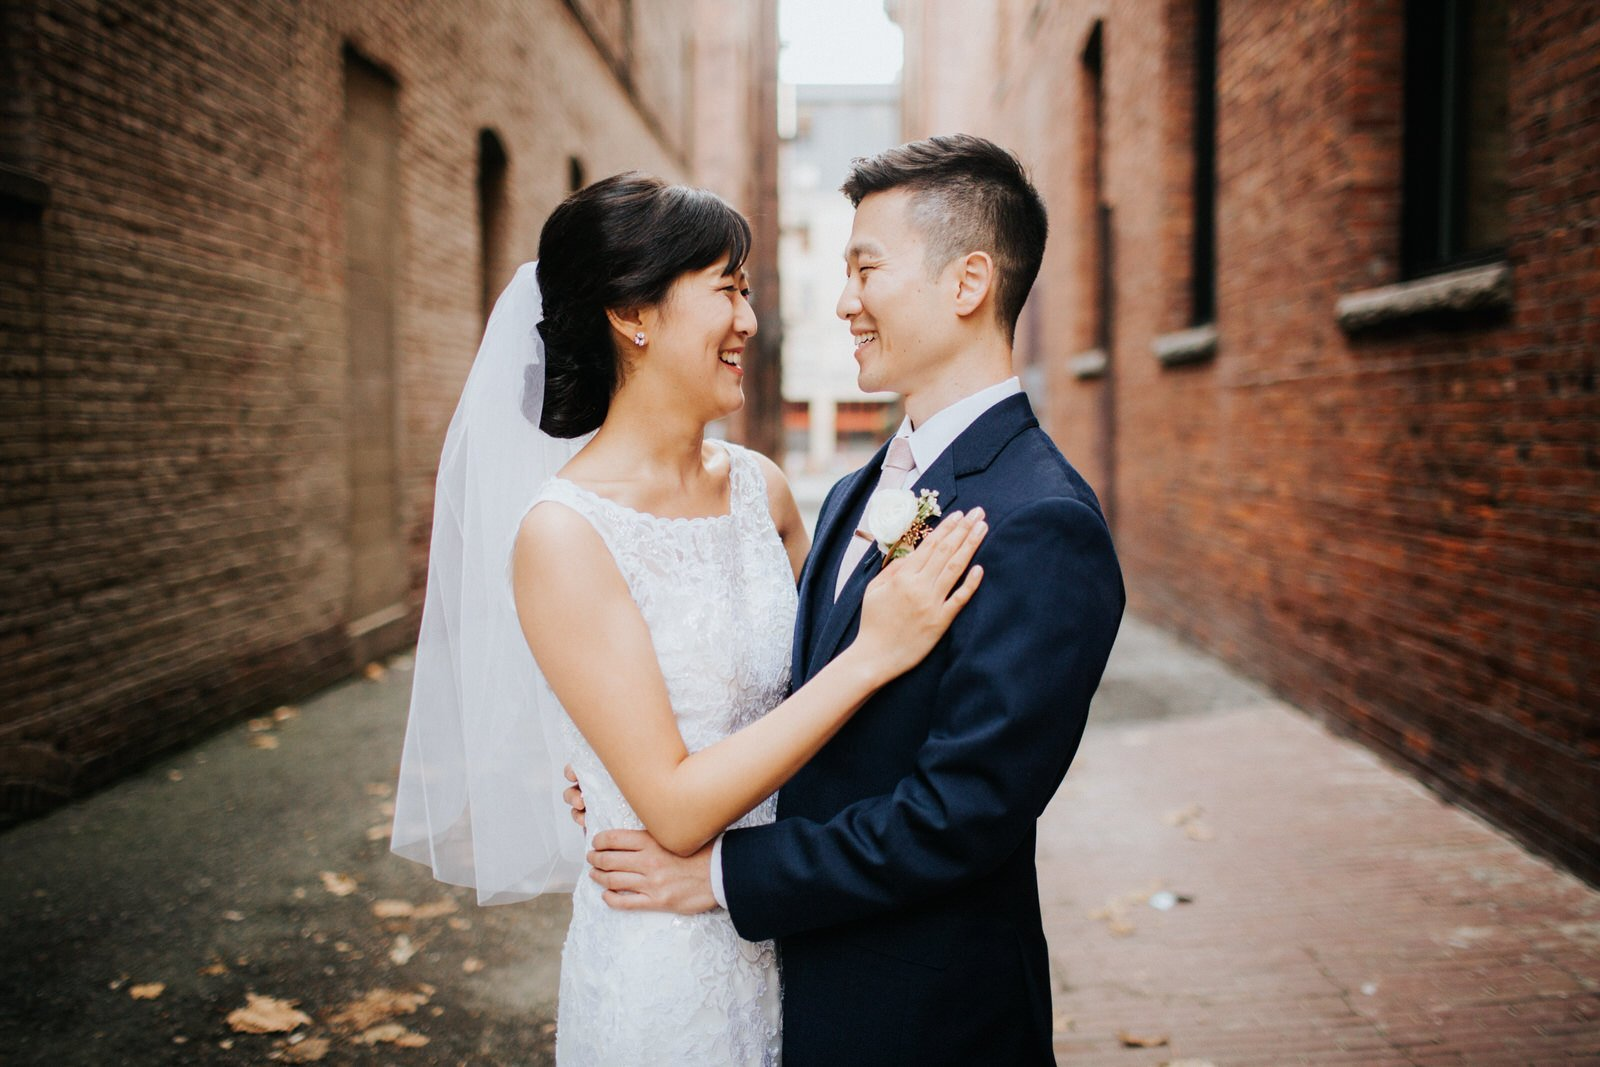 The couple poses in an alleyway in pioneer square during wedding photos at hotel 1000